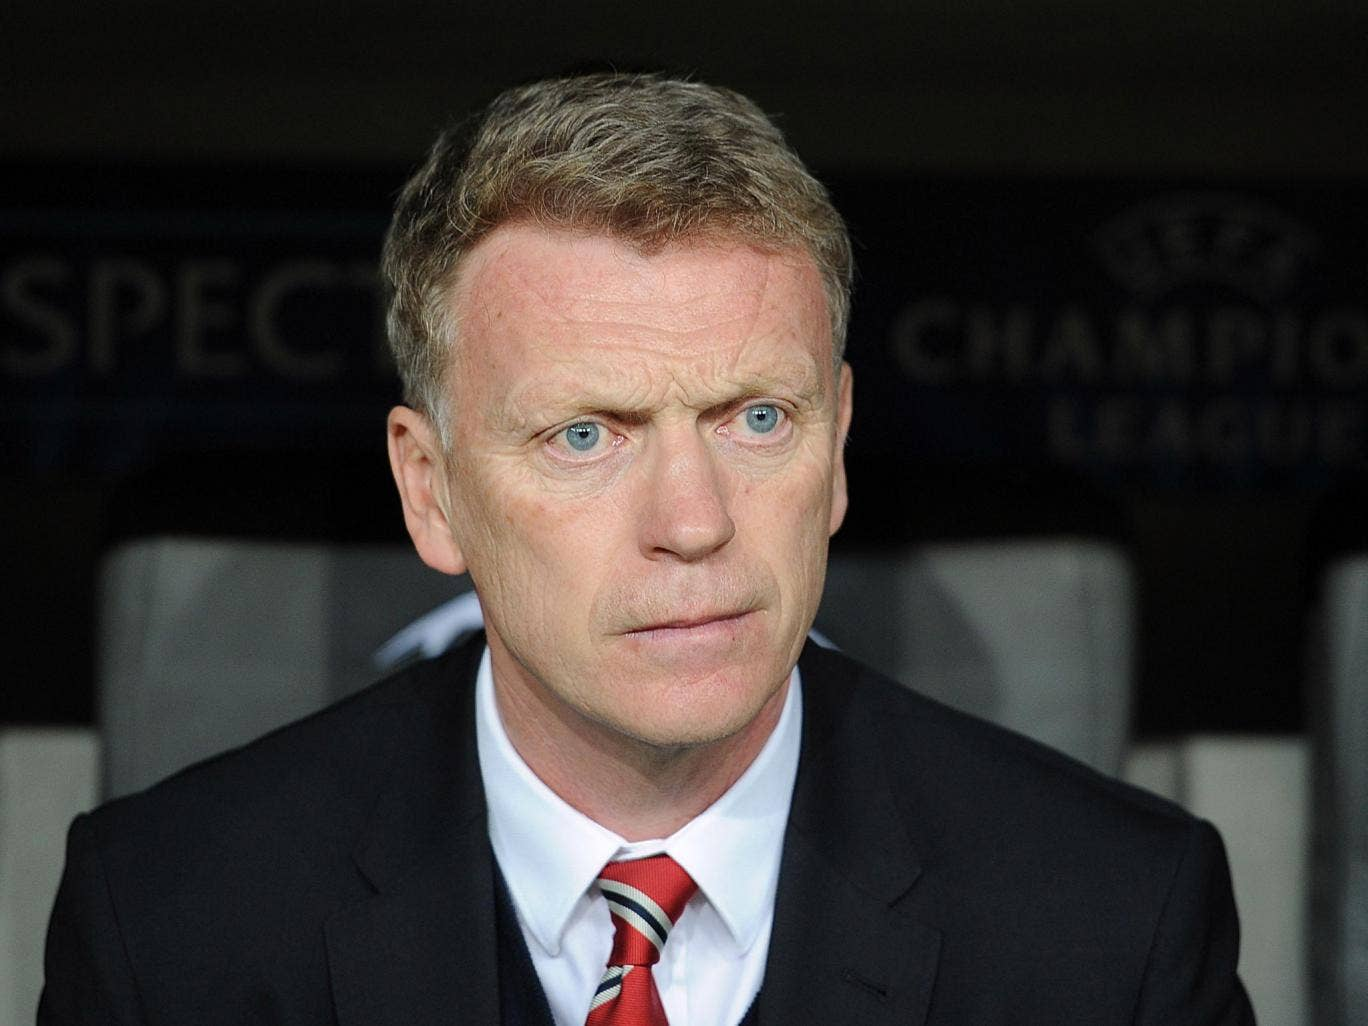 David Moyes received £7m following his brief stint as Manchester United manager